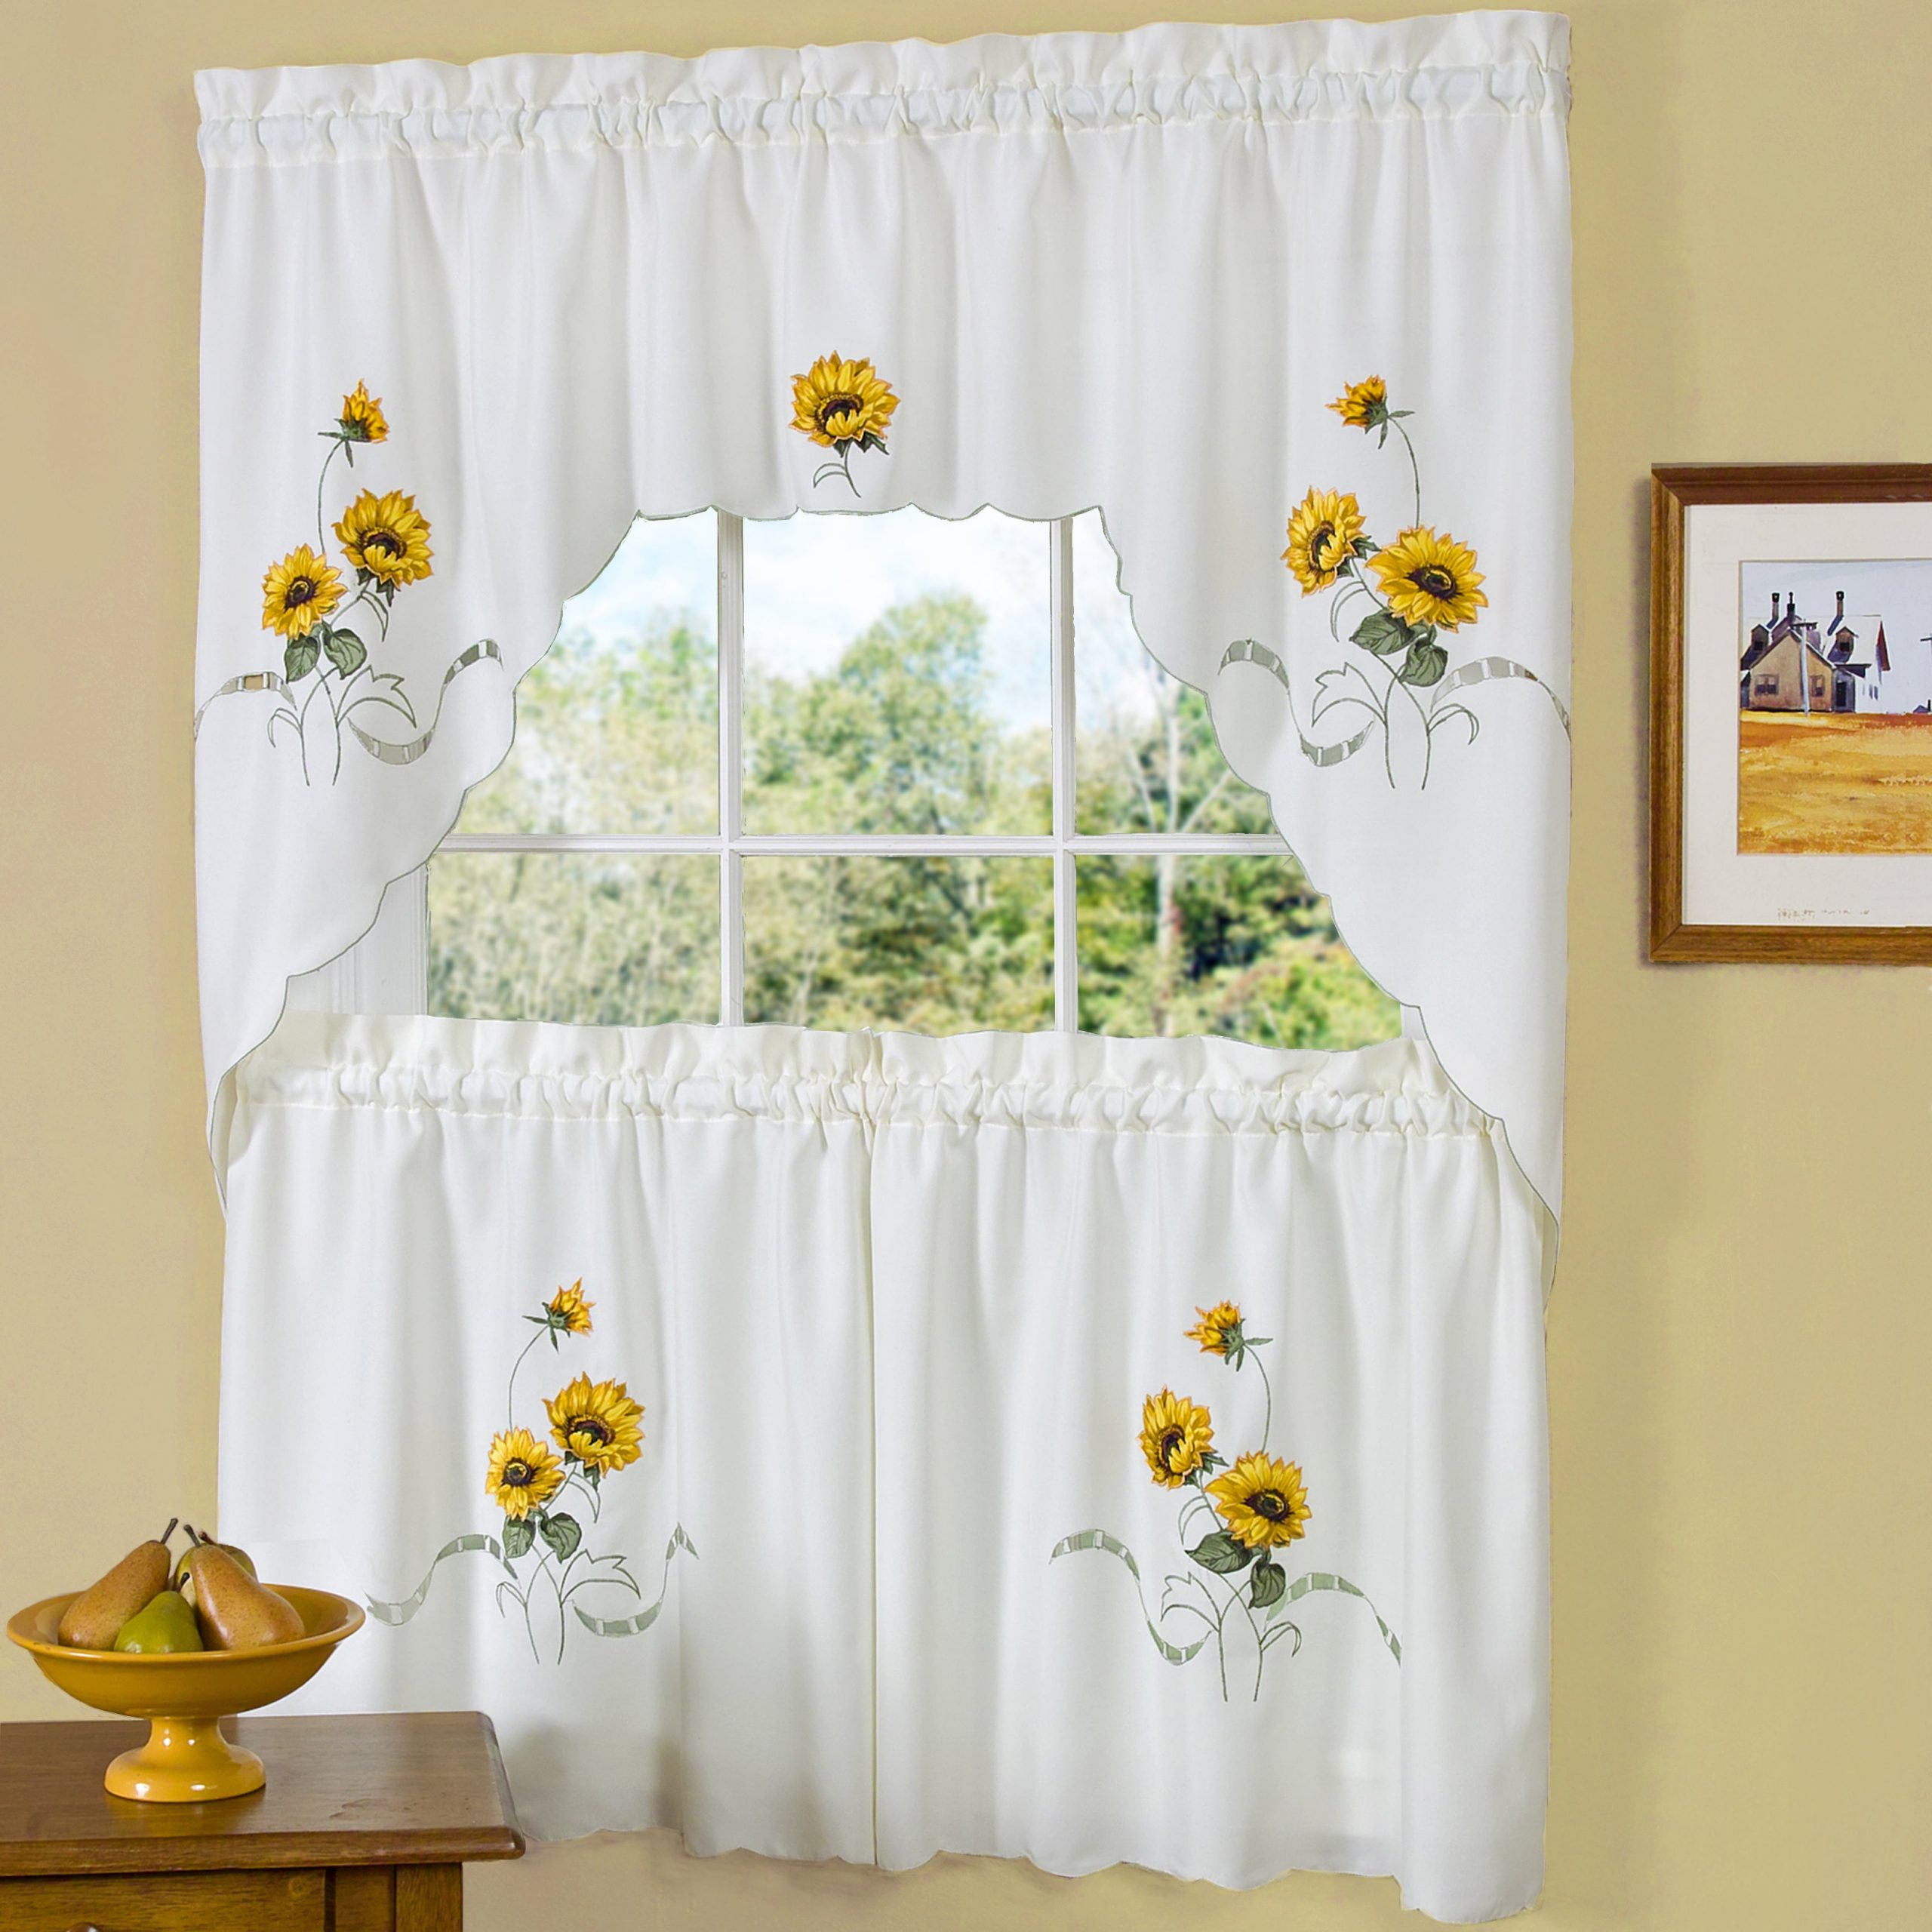 Most Current Cotton Blend Ivy Floral Tier Curtain And Swag Sets Intended For Traditional Two Piece Tailored Tier And Swag Window Curtains Set With Embroidered Yellow Sunflowers – 36 Inch (Gallery 6 of 20)